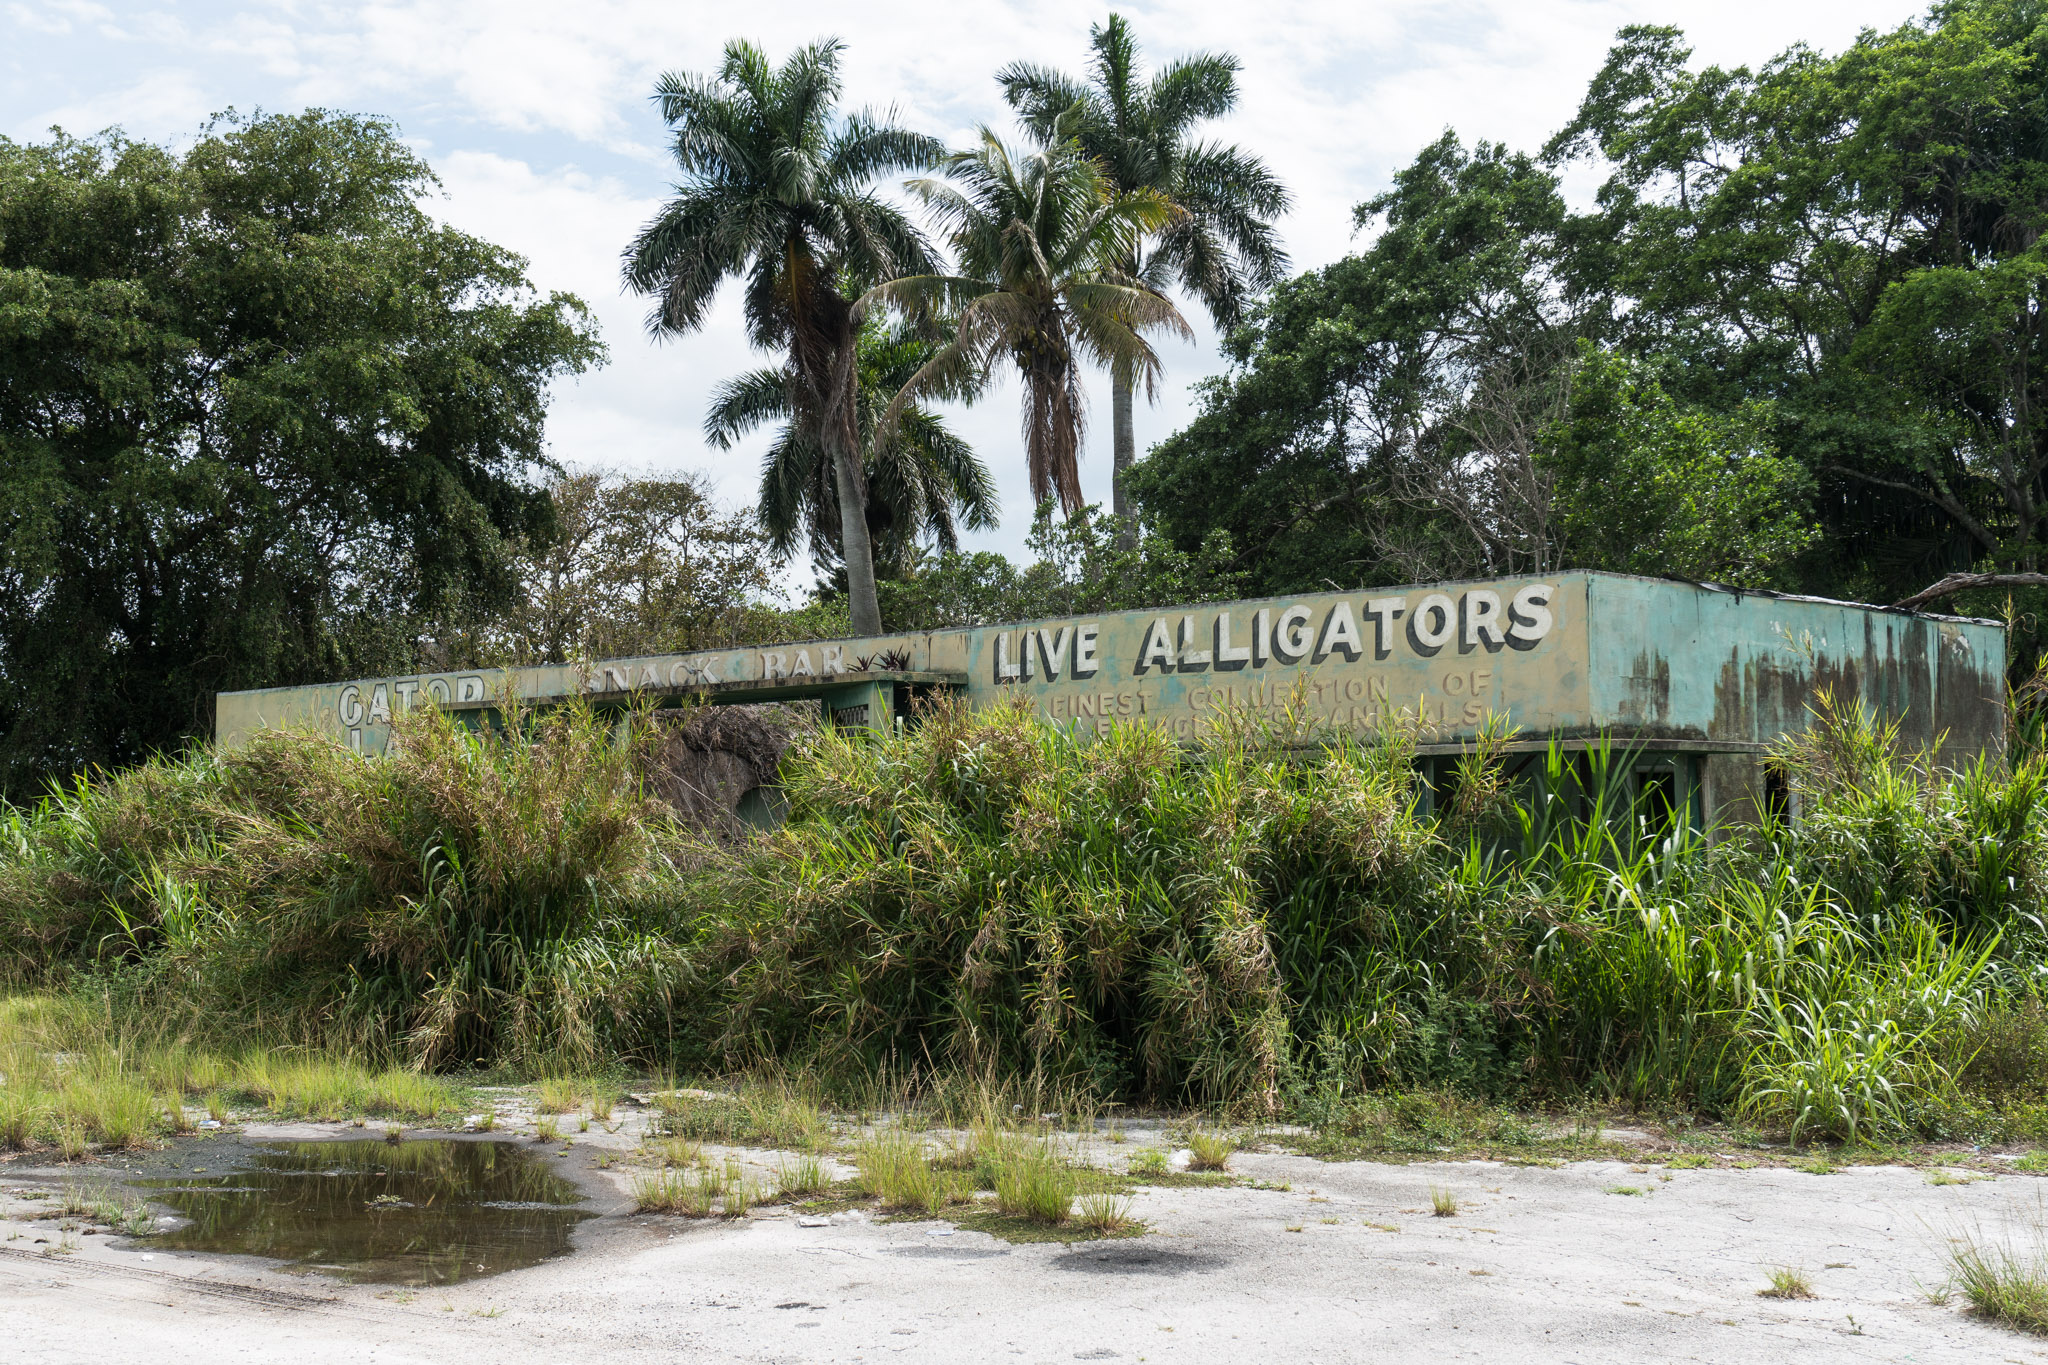 An abandoned roadside attraction. (South Florida)